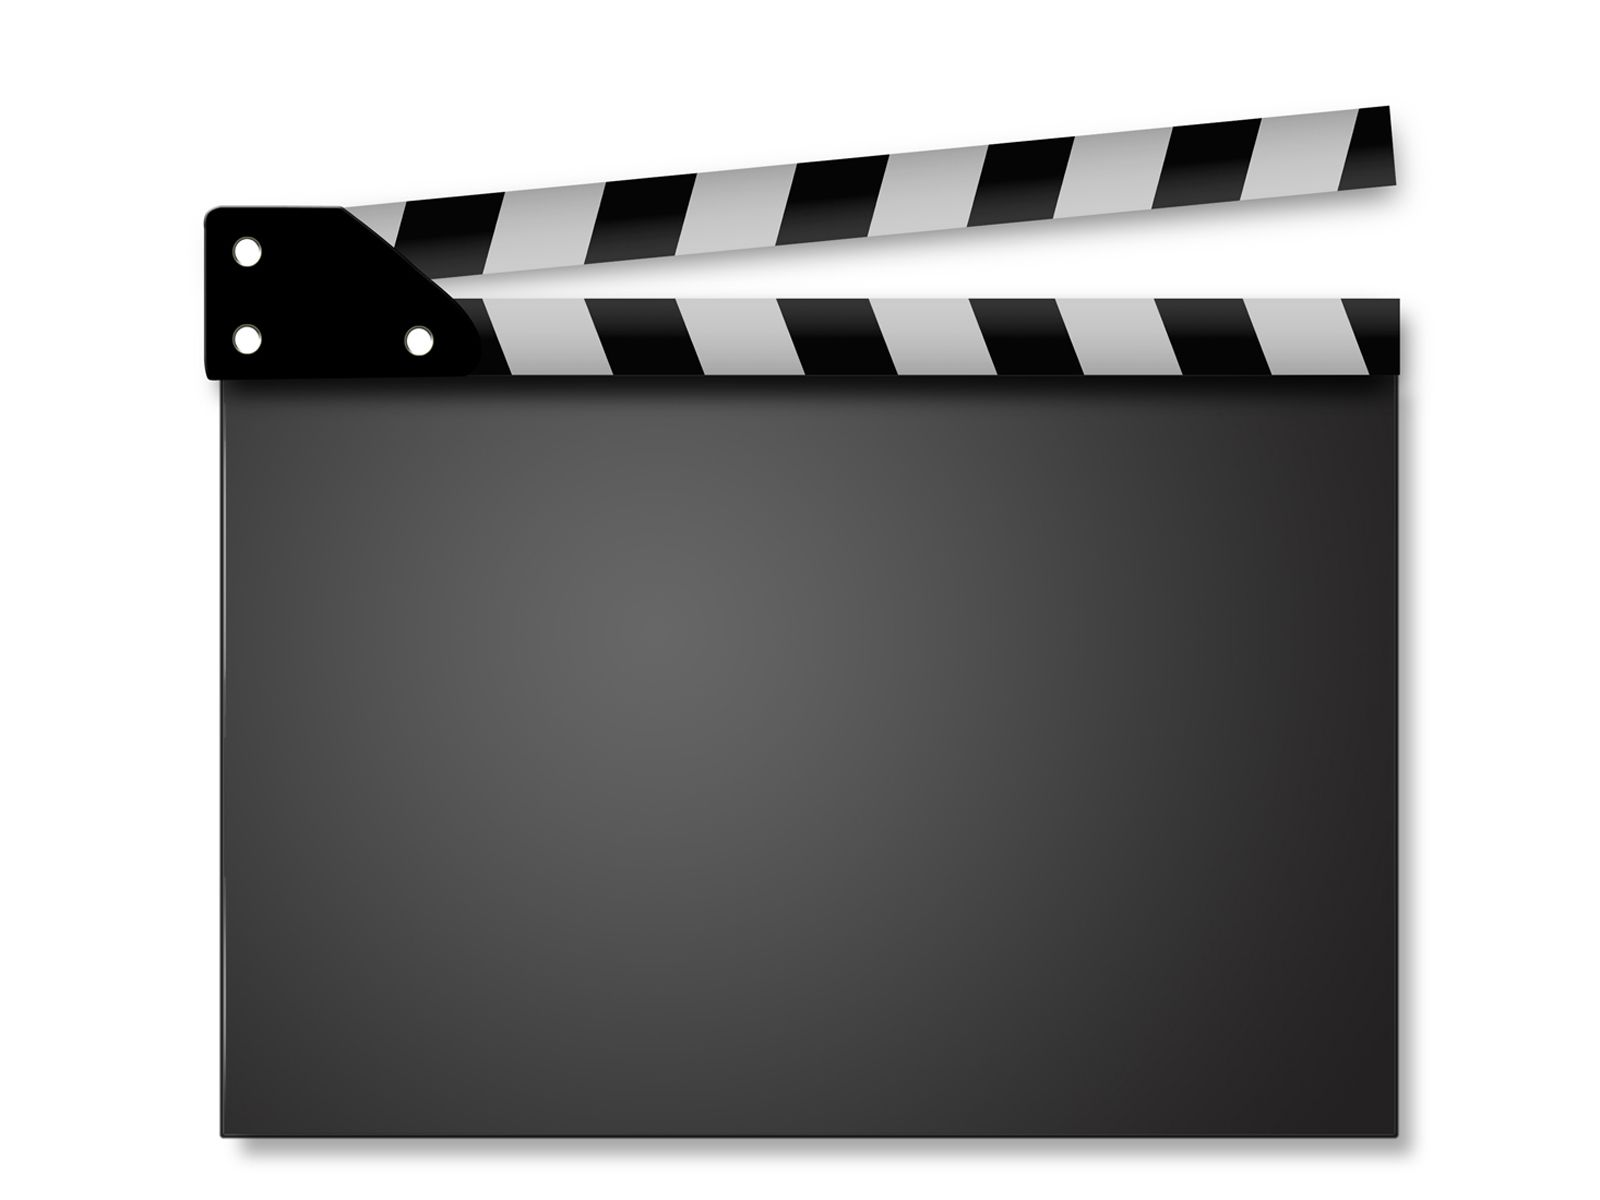 Movie clapperboard series ppt backgrounds templates marketing movie clapperboard series ppt backgrounds templates toneelgroepblik Image collections